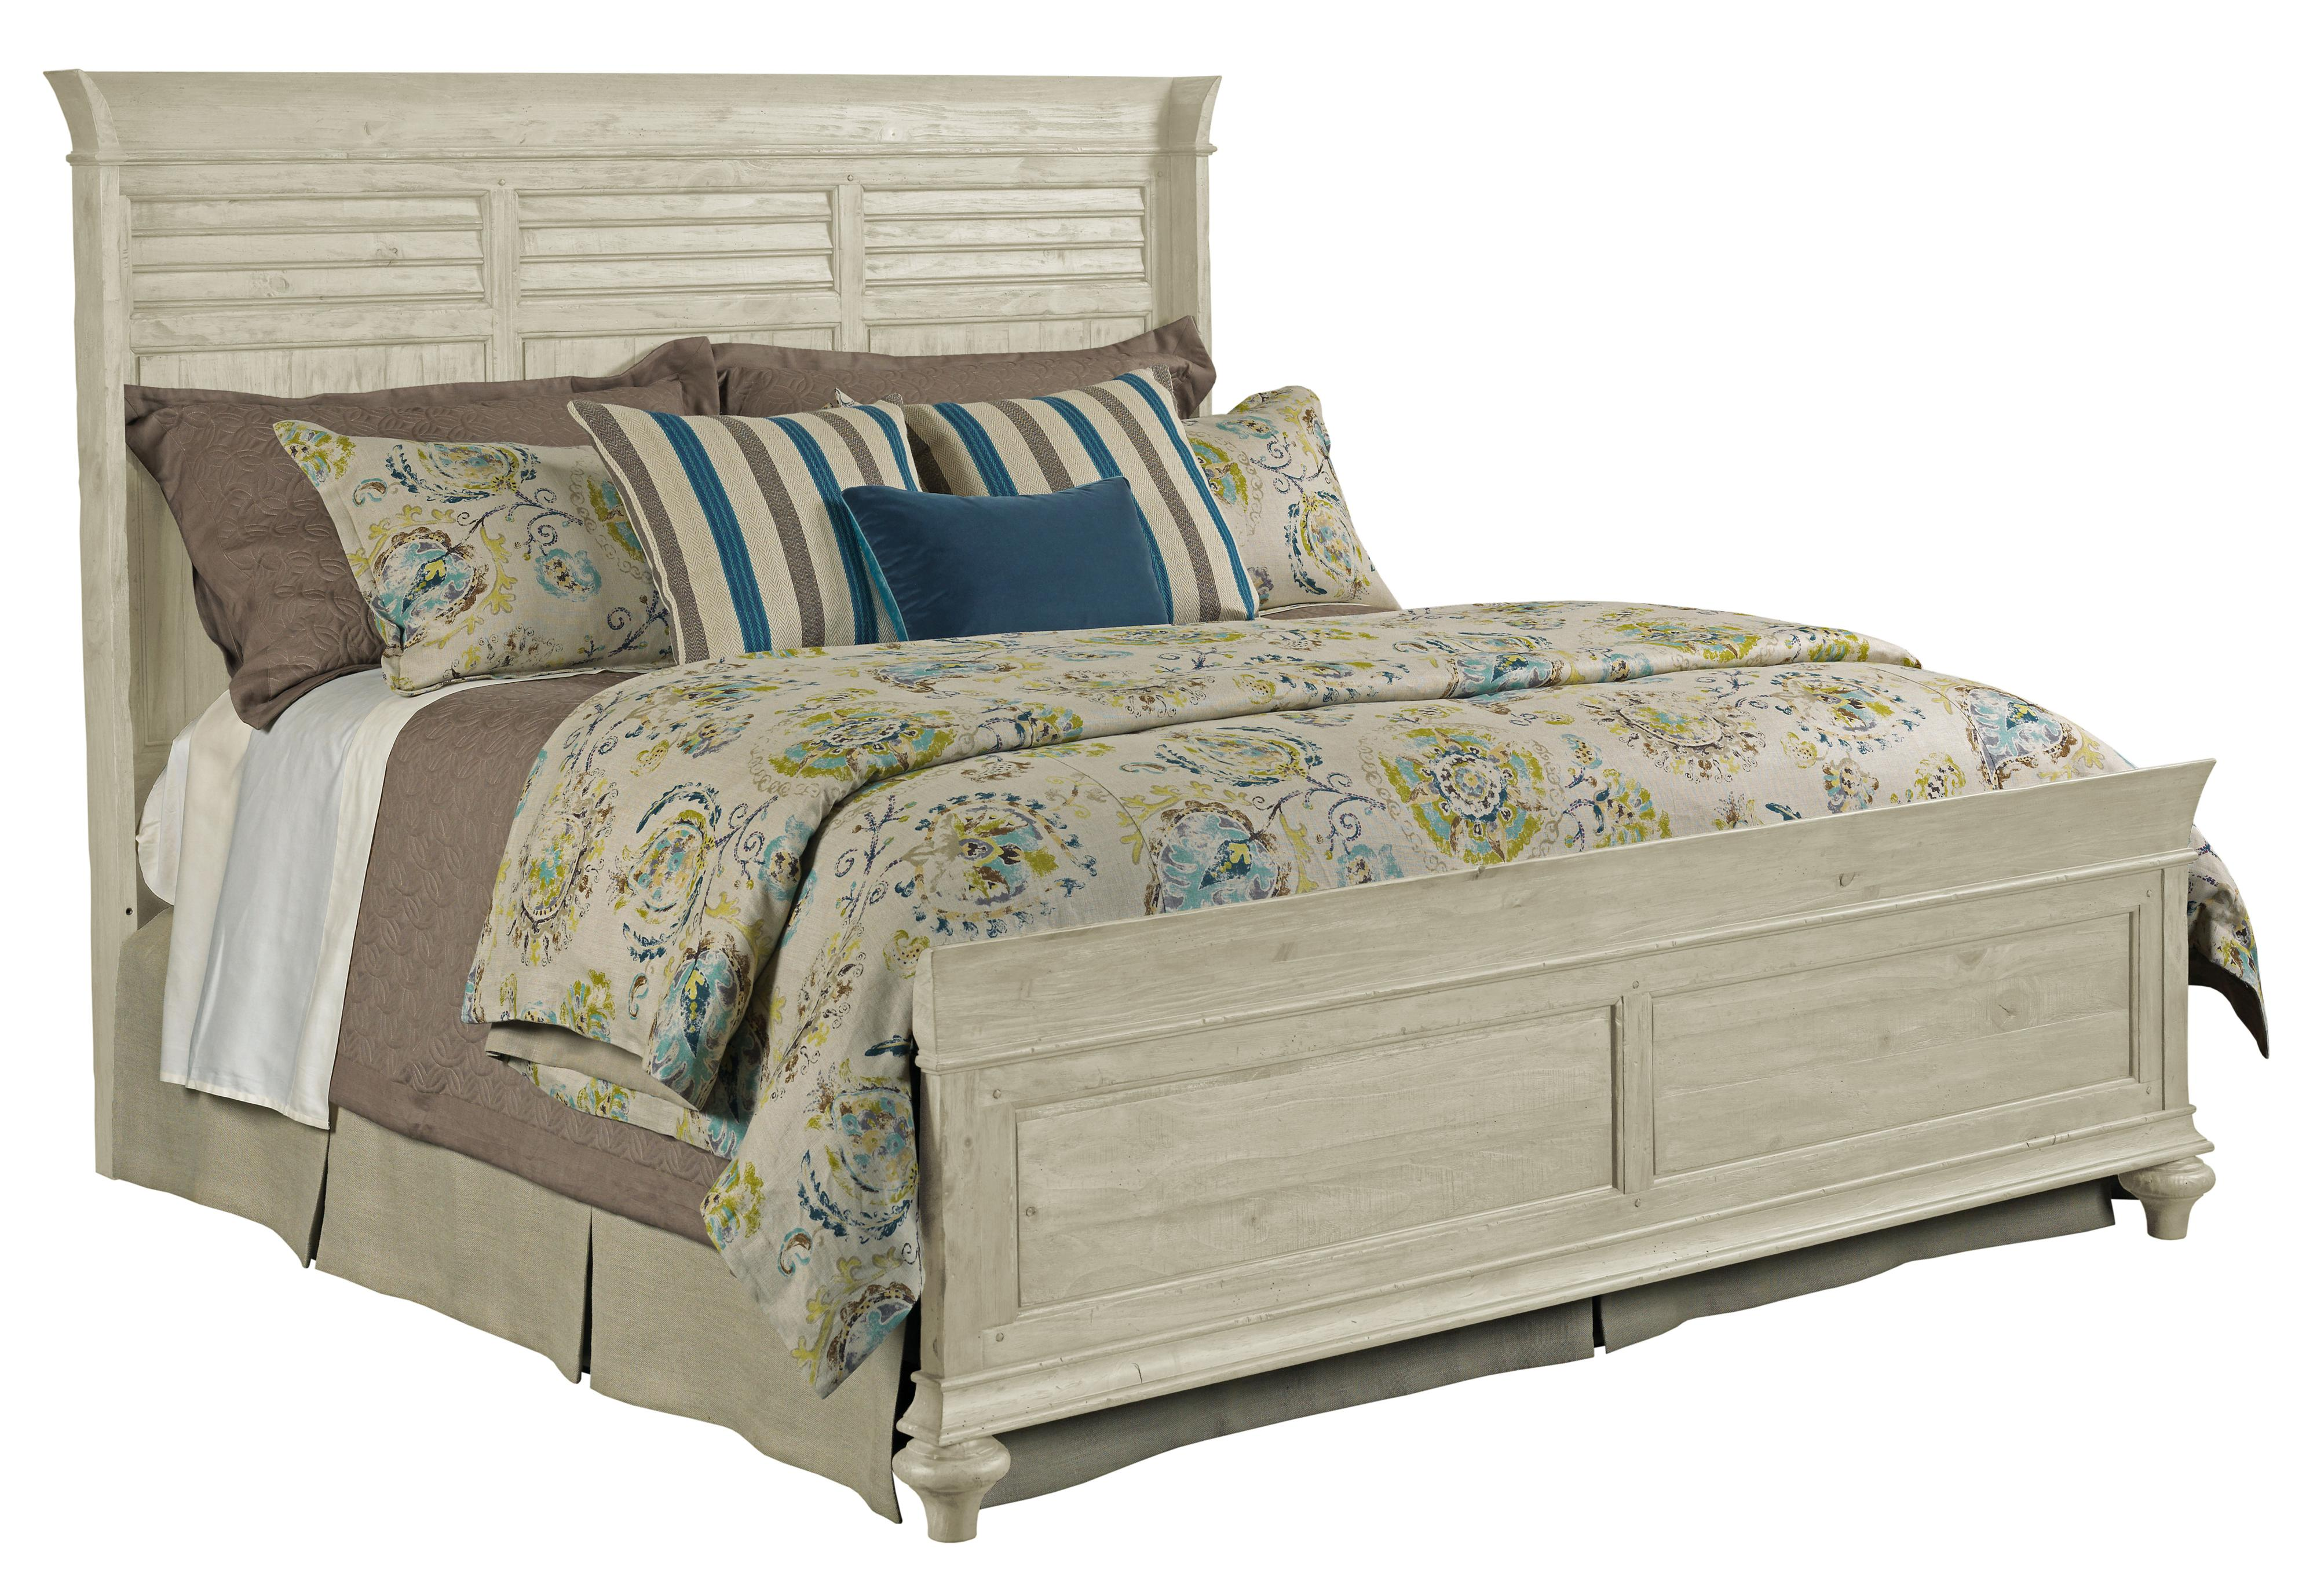 Weatherford Shelter King Bed Package at Stoney Creek Furniture